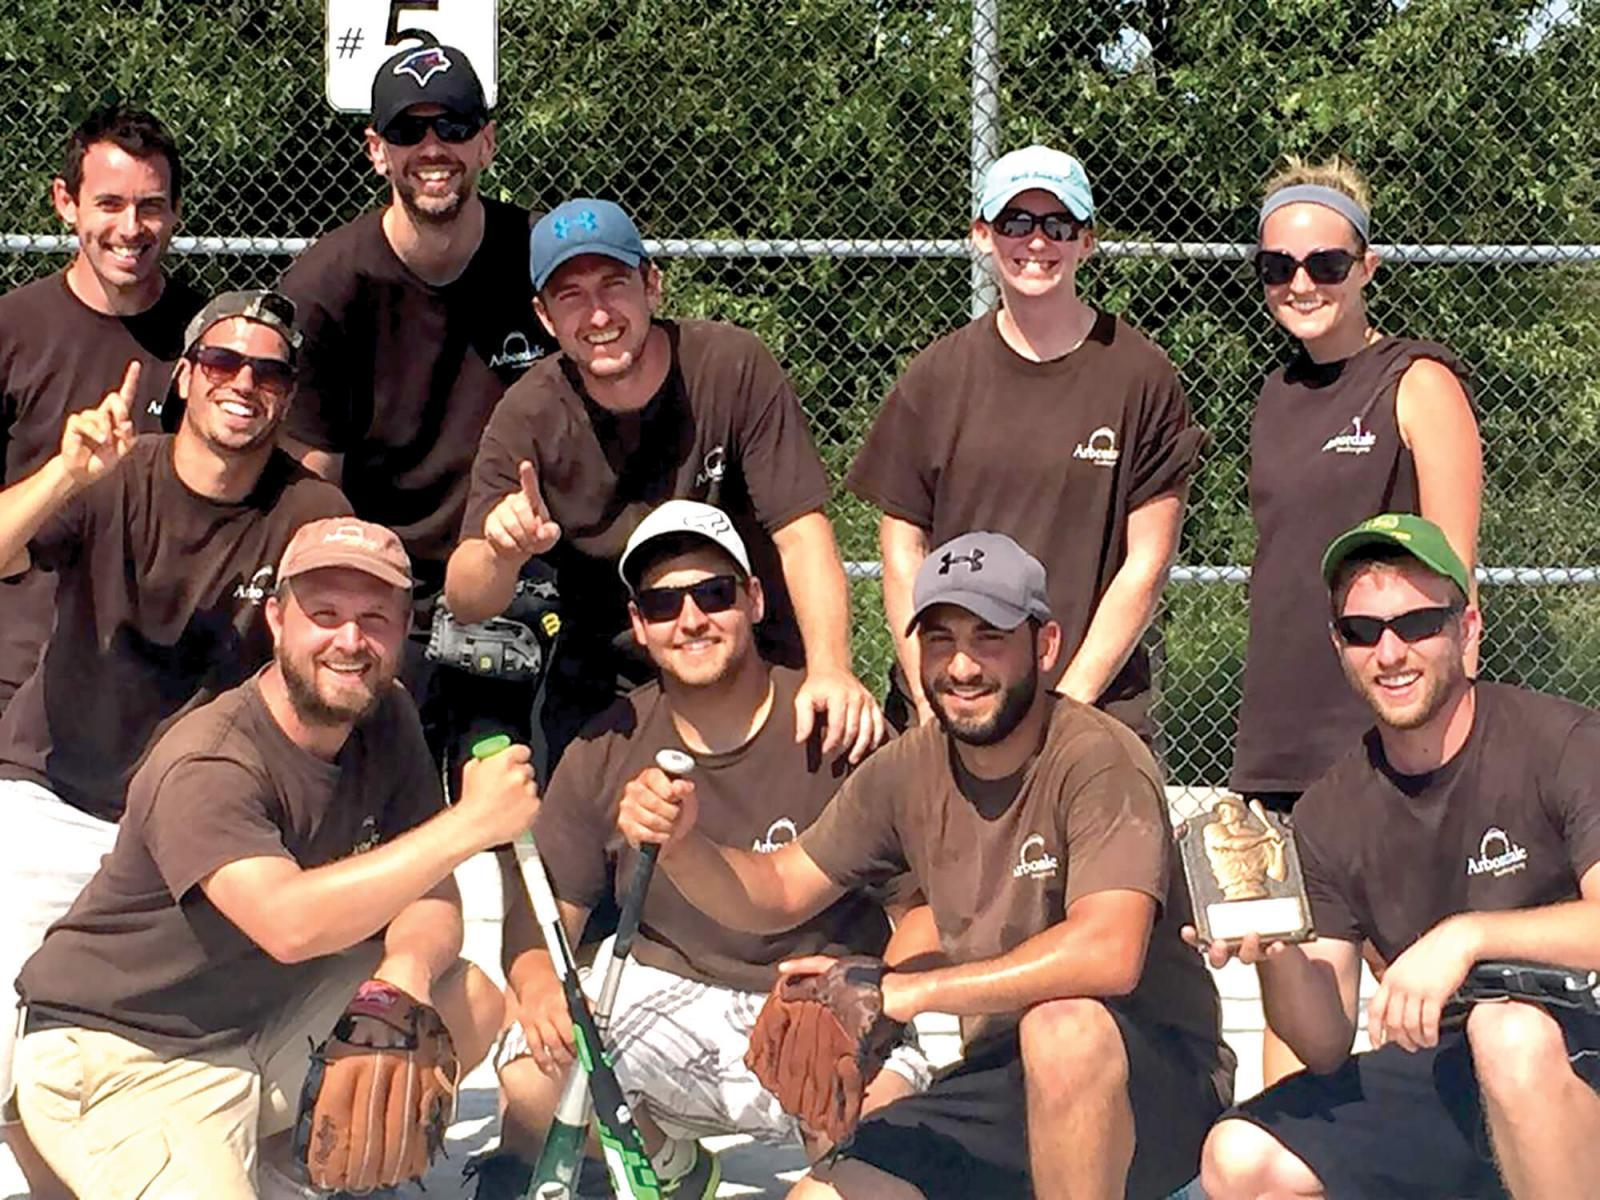 Arbordale wins Toronto baseball tournament